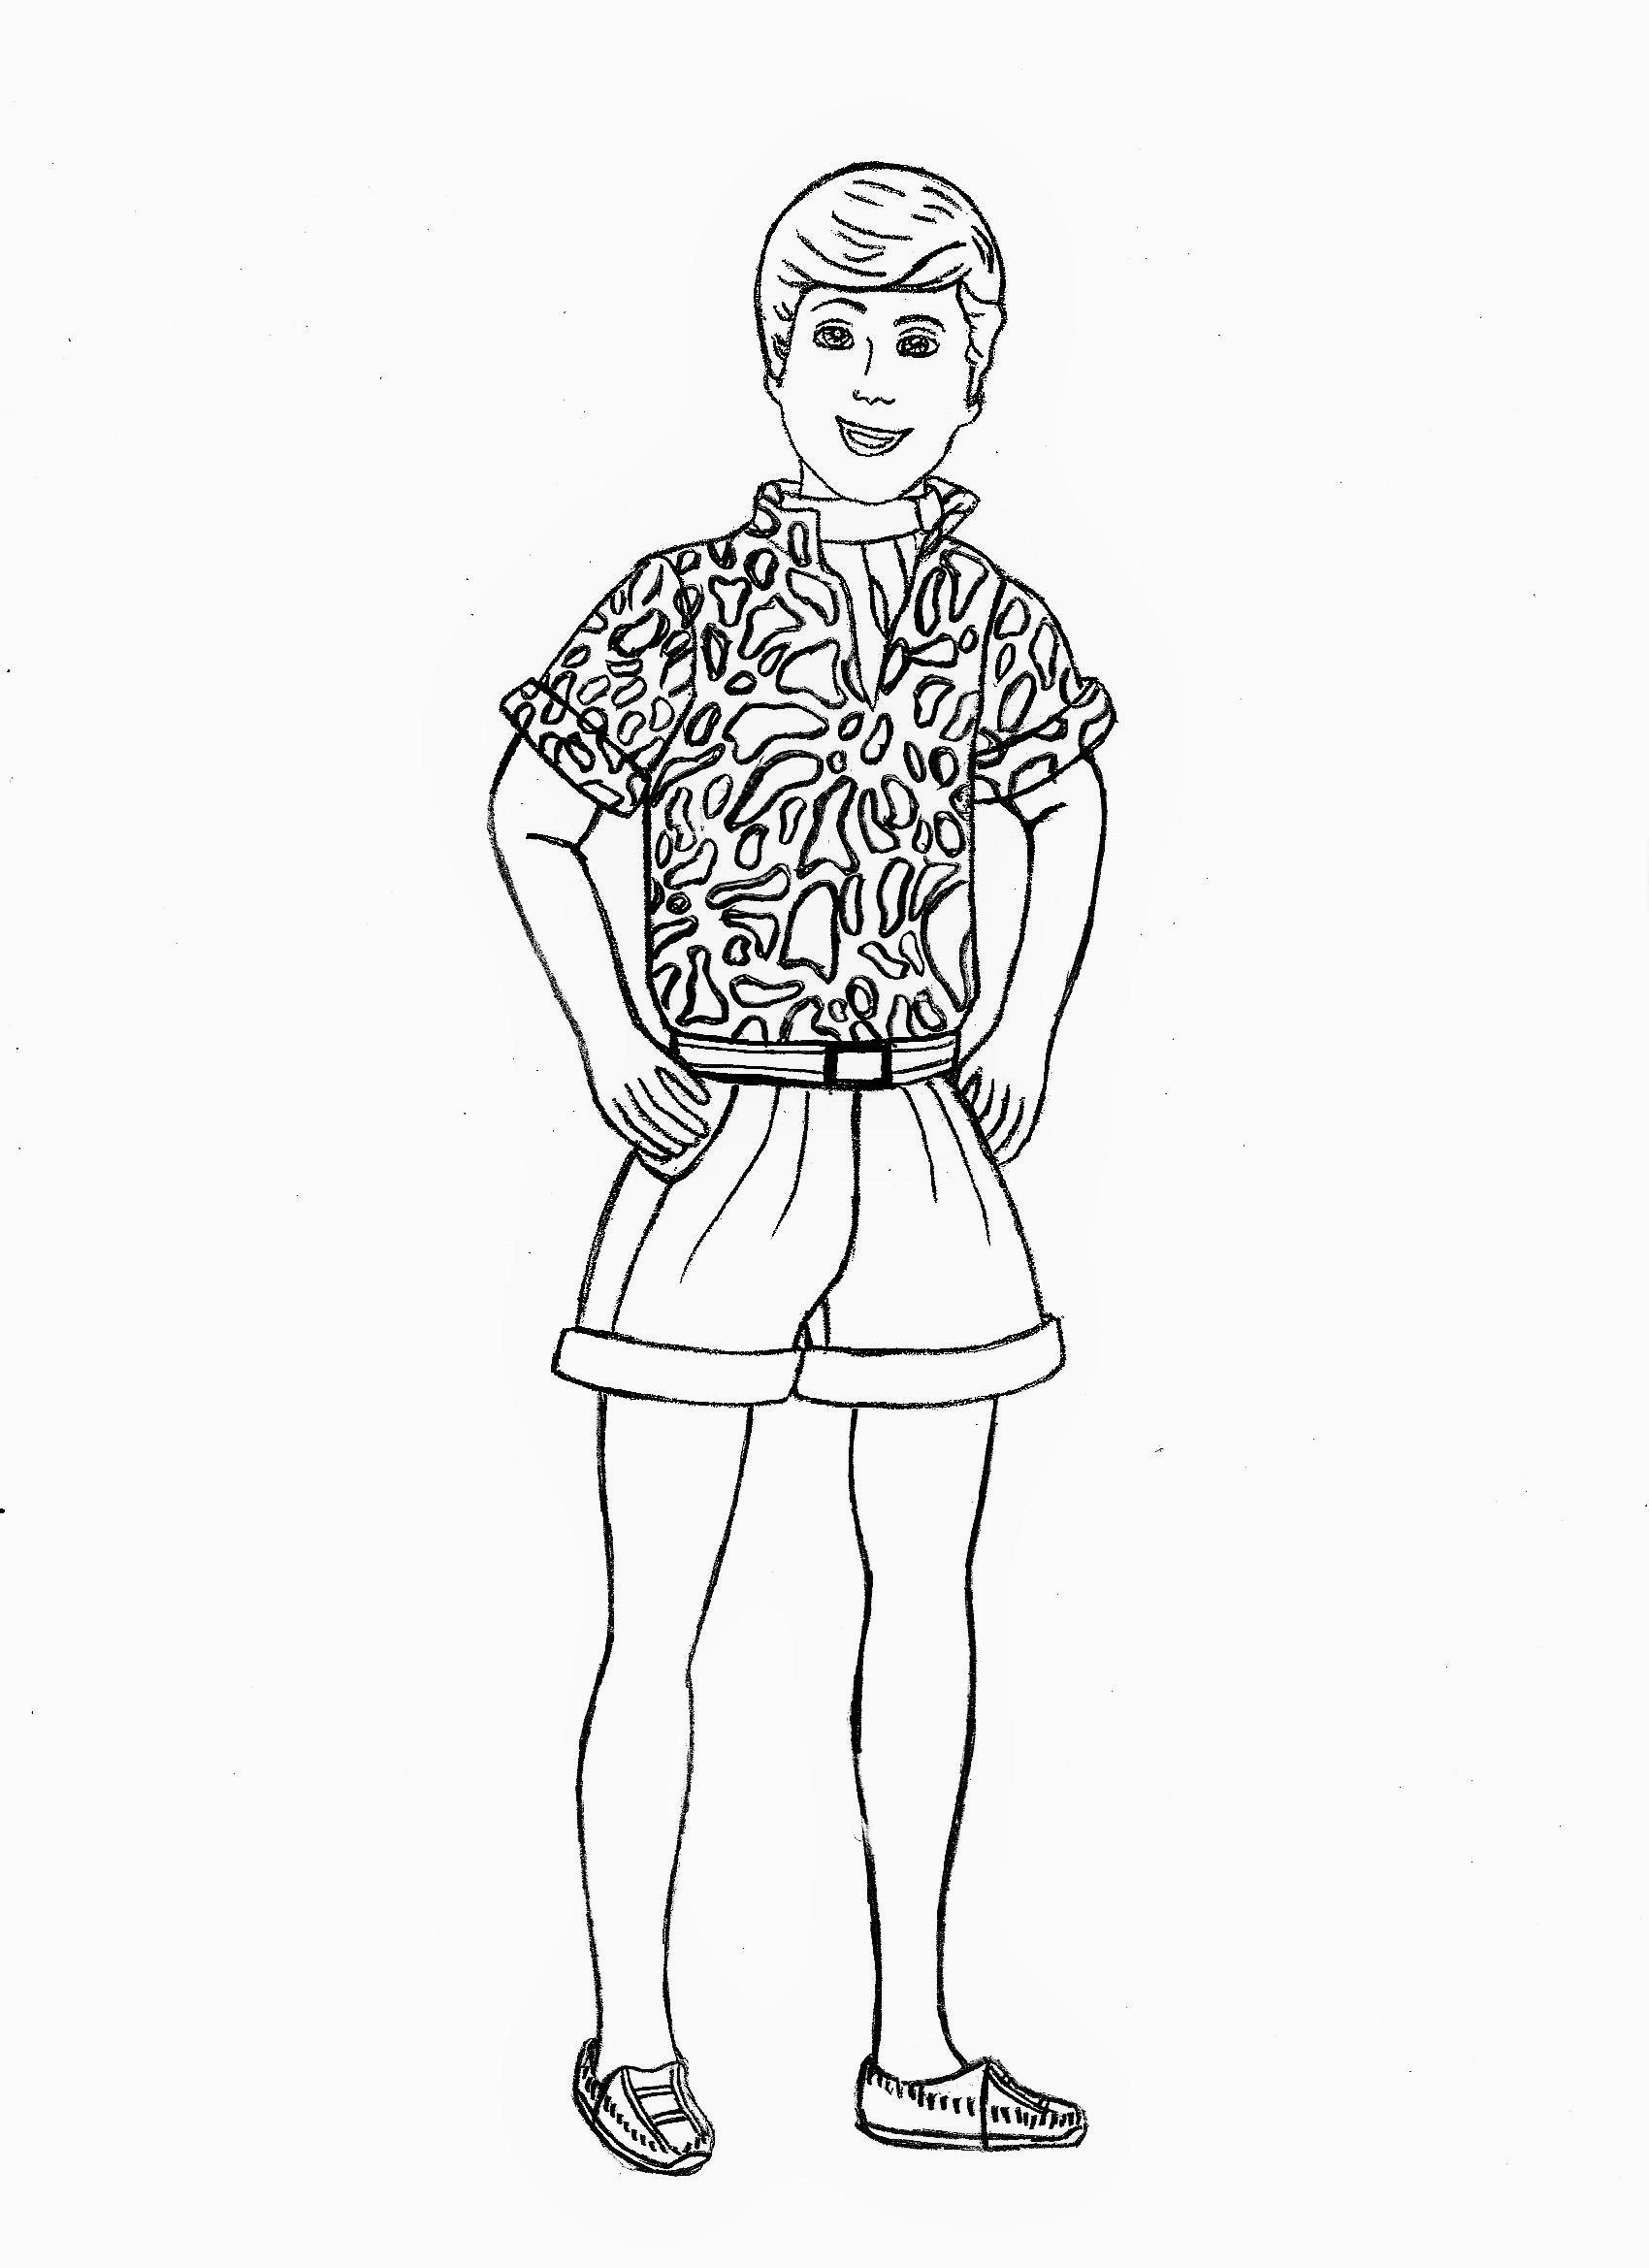 Toy Story Barbie Printable Coloring Pages